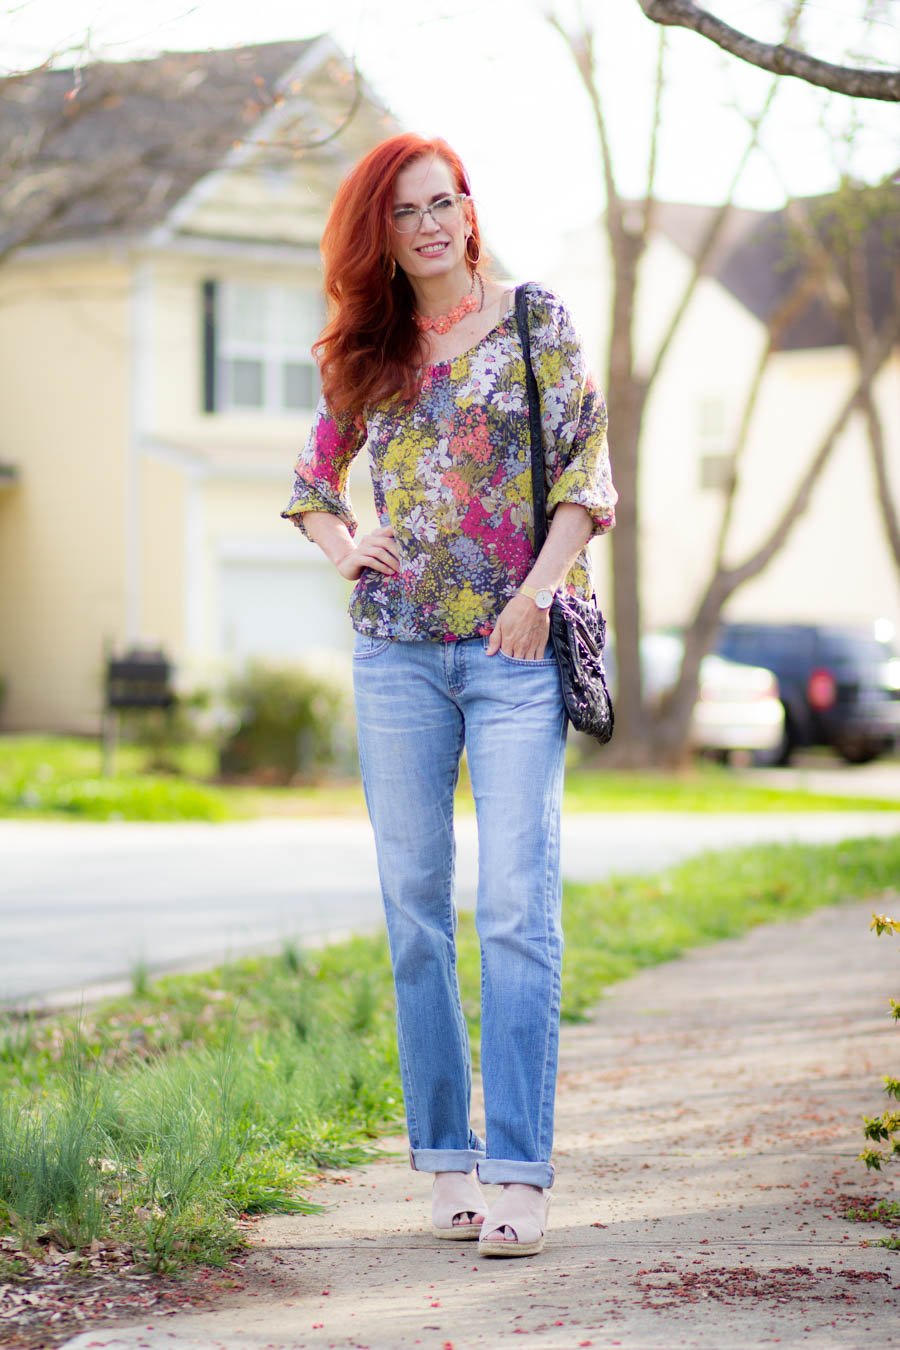 Spring floral top and light jeans